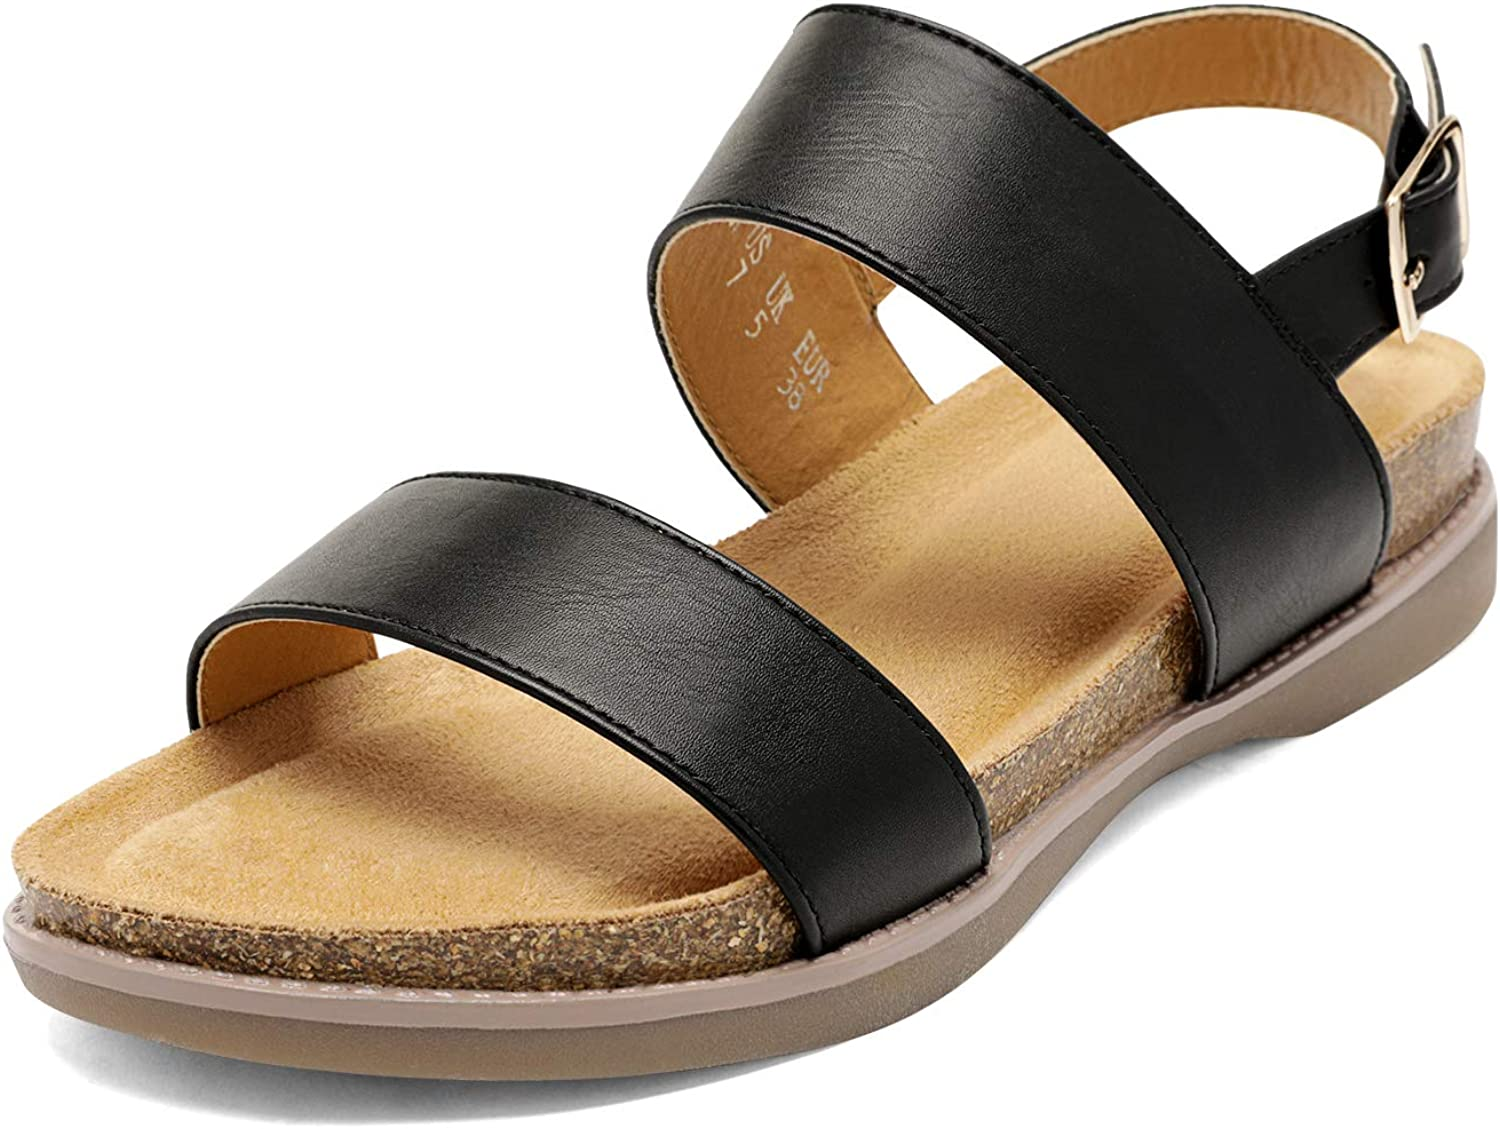 DREAM PAIRS Women's One Band Fixed price for sale Flat Ankle Strap Soft Sandals Portland Mall